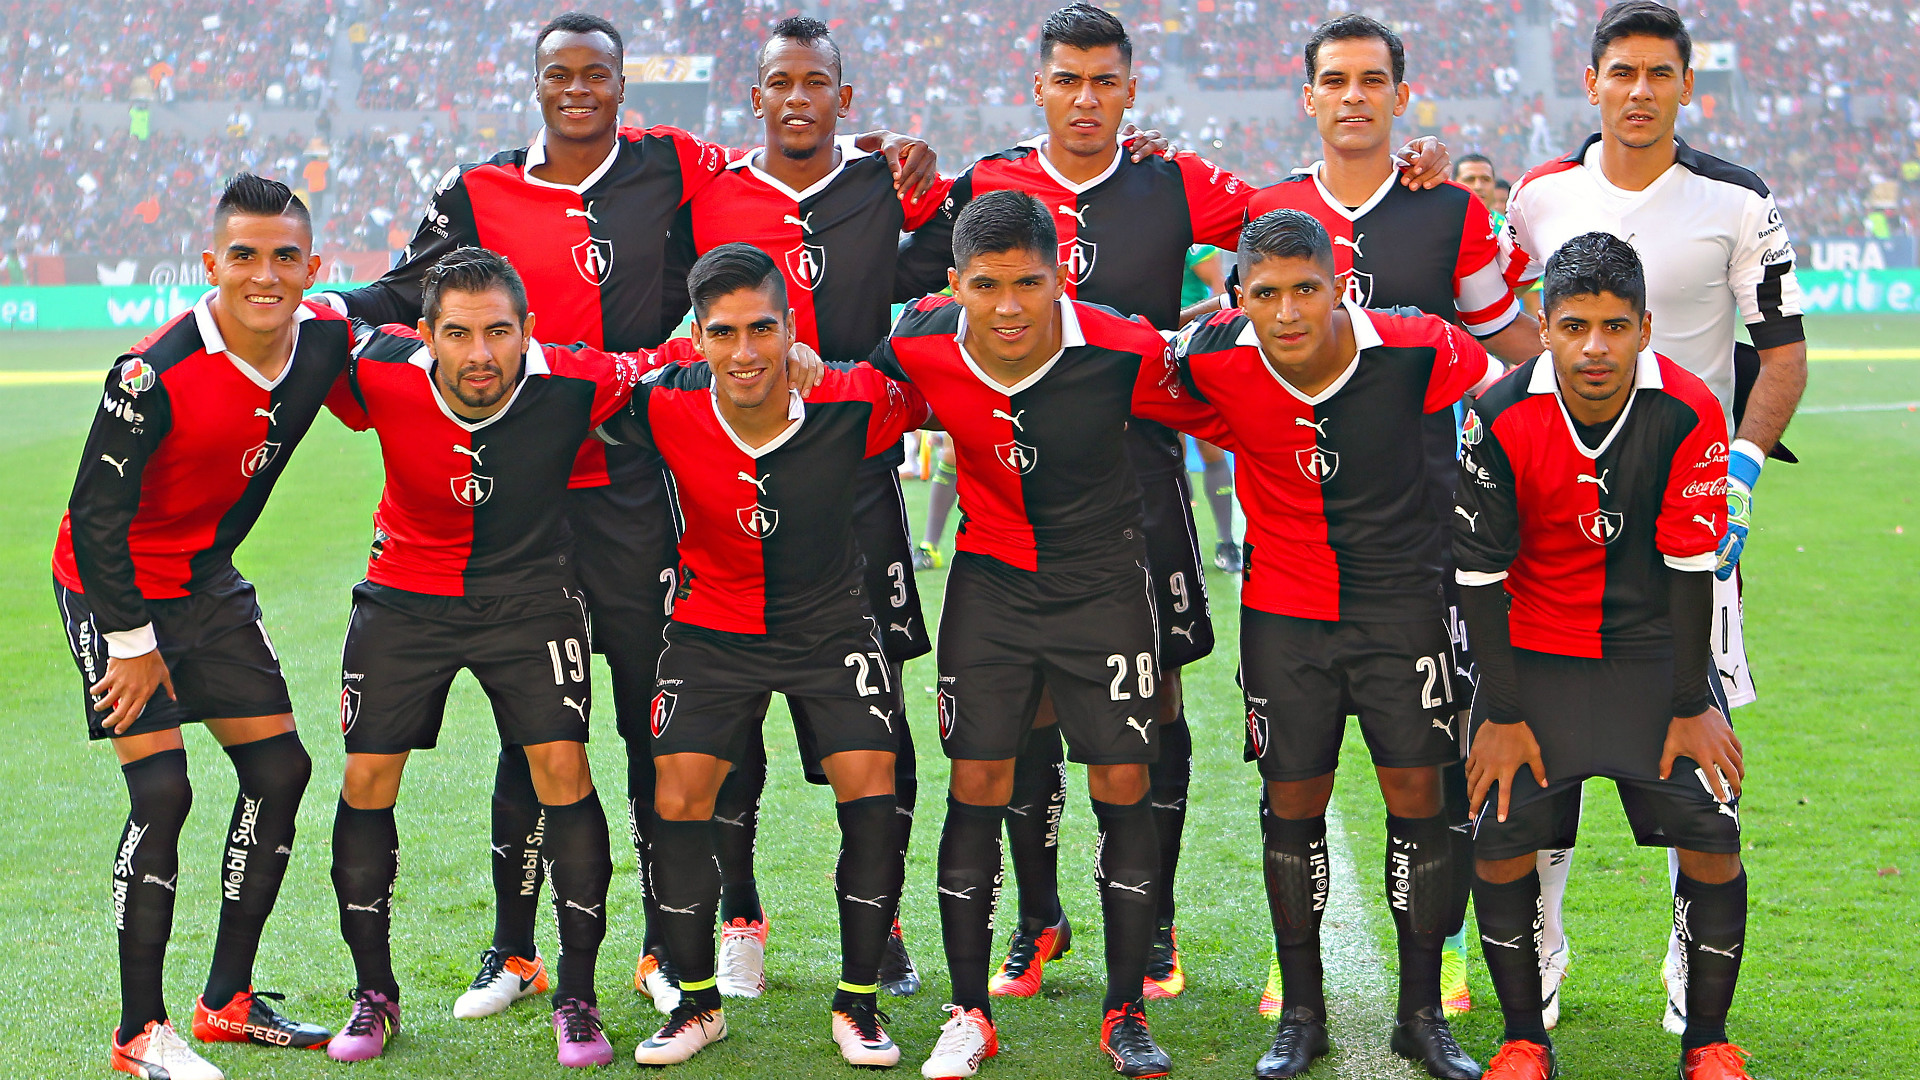 Image result for Atlas fc